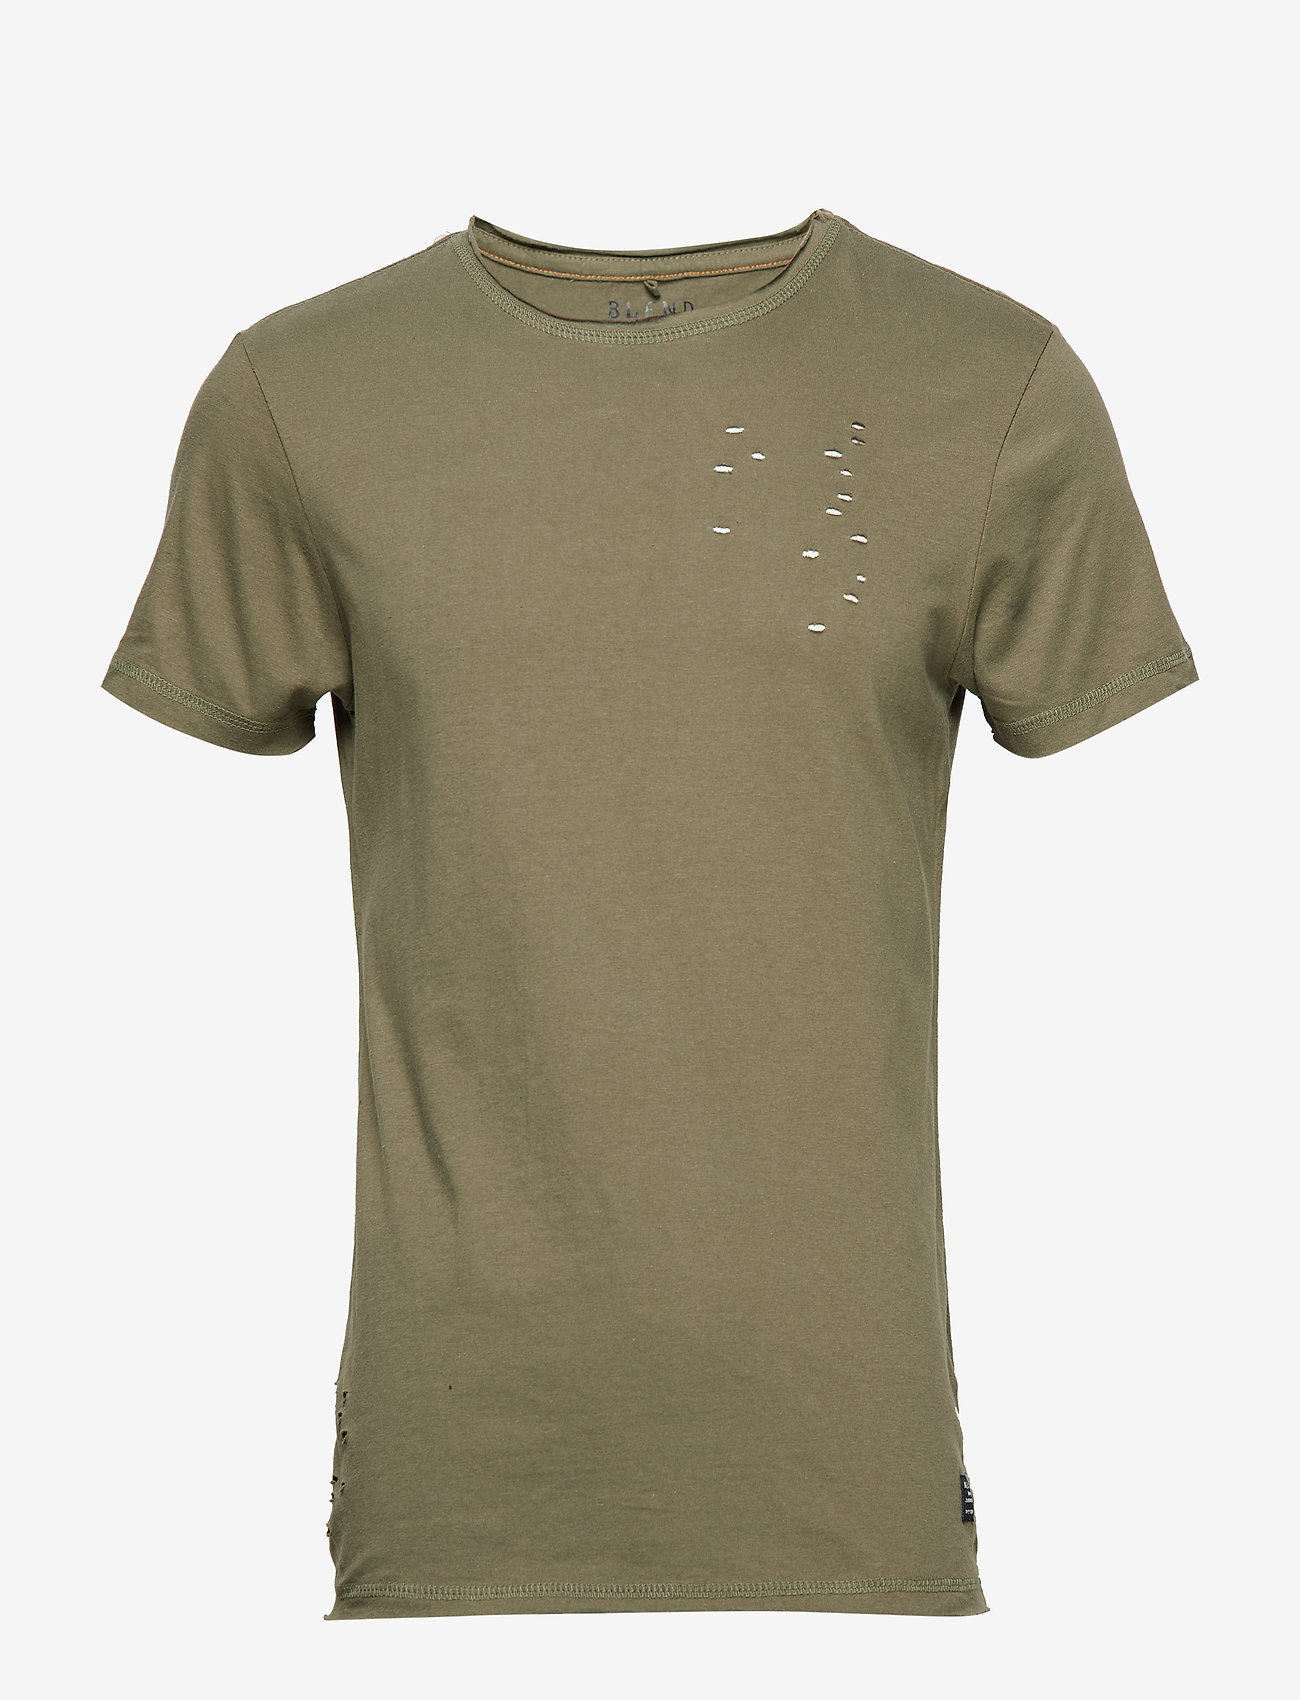 Blend - Tee - À manches courtes - dusty olive green